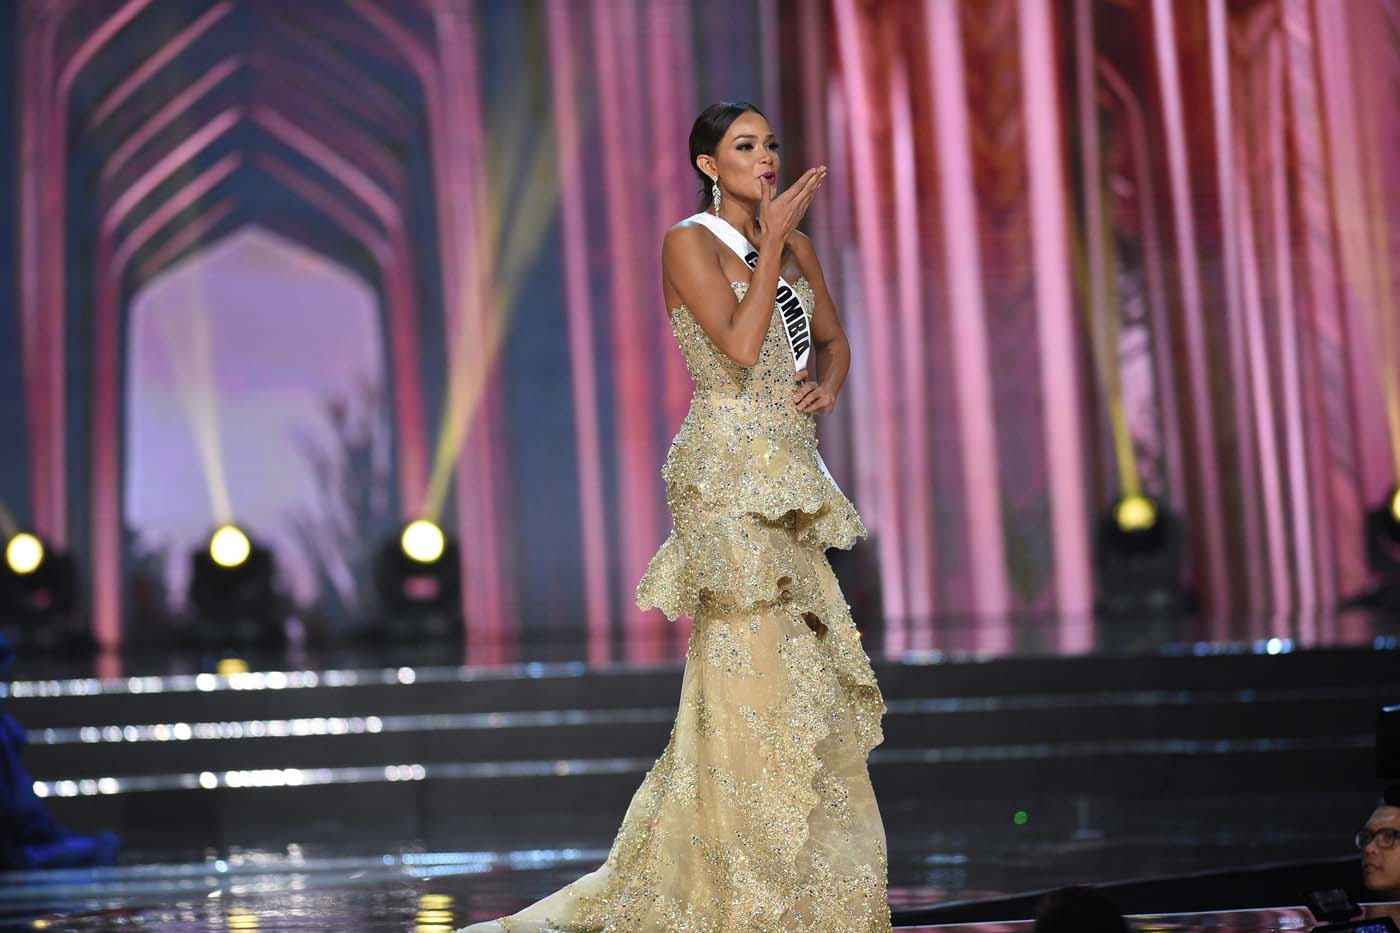 This photo taken on January 26, 2017 shows Miss Universe contestant Andrea Tovar of Colombia in her long gown during the preliminary competition of the Miss Universe pageant at the Mall of Asia arena in Manila. / AFP PHOTO / TED ALJIBE